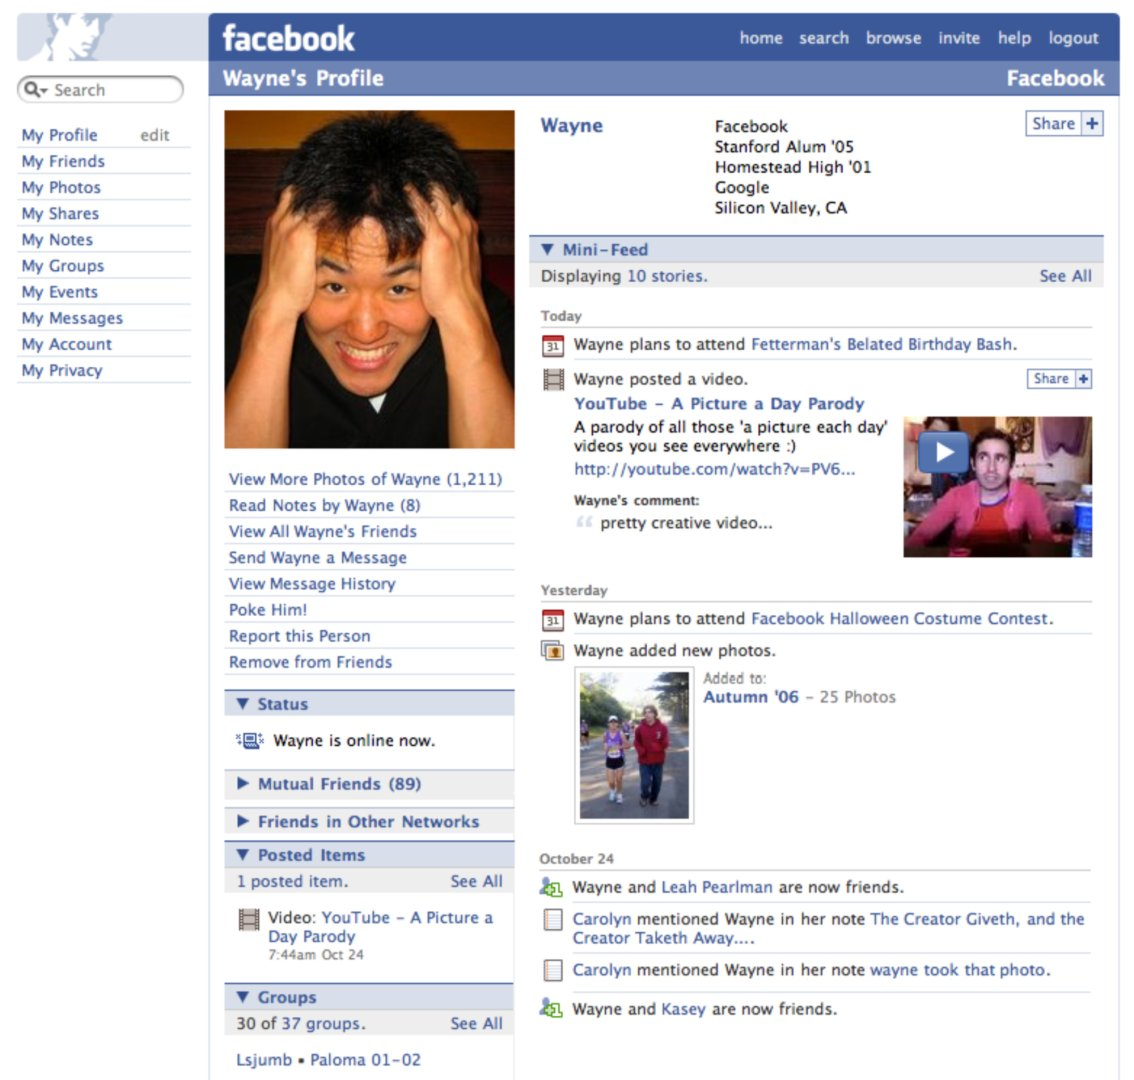 Facebook profile page (2006)